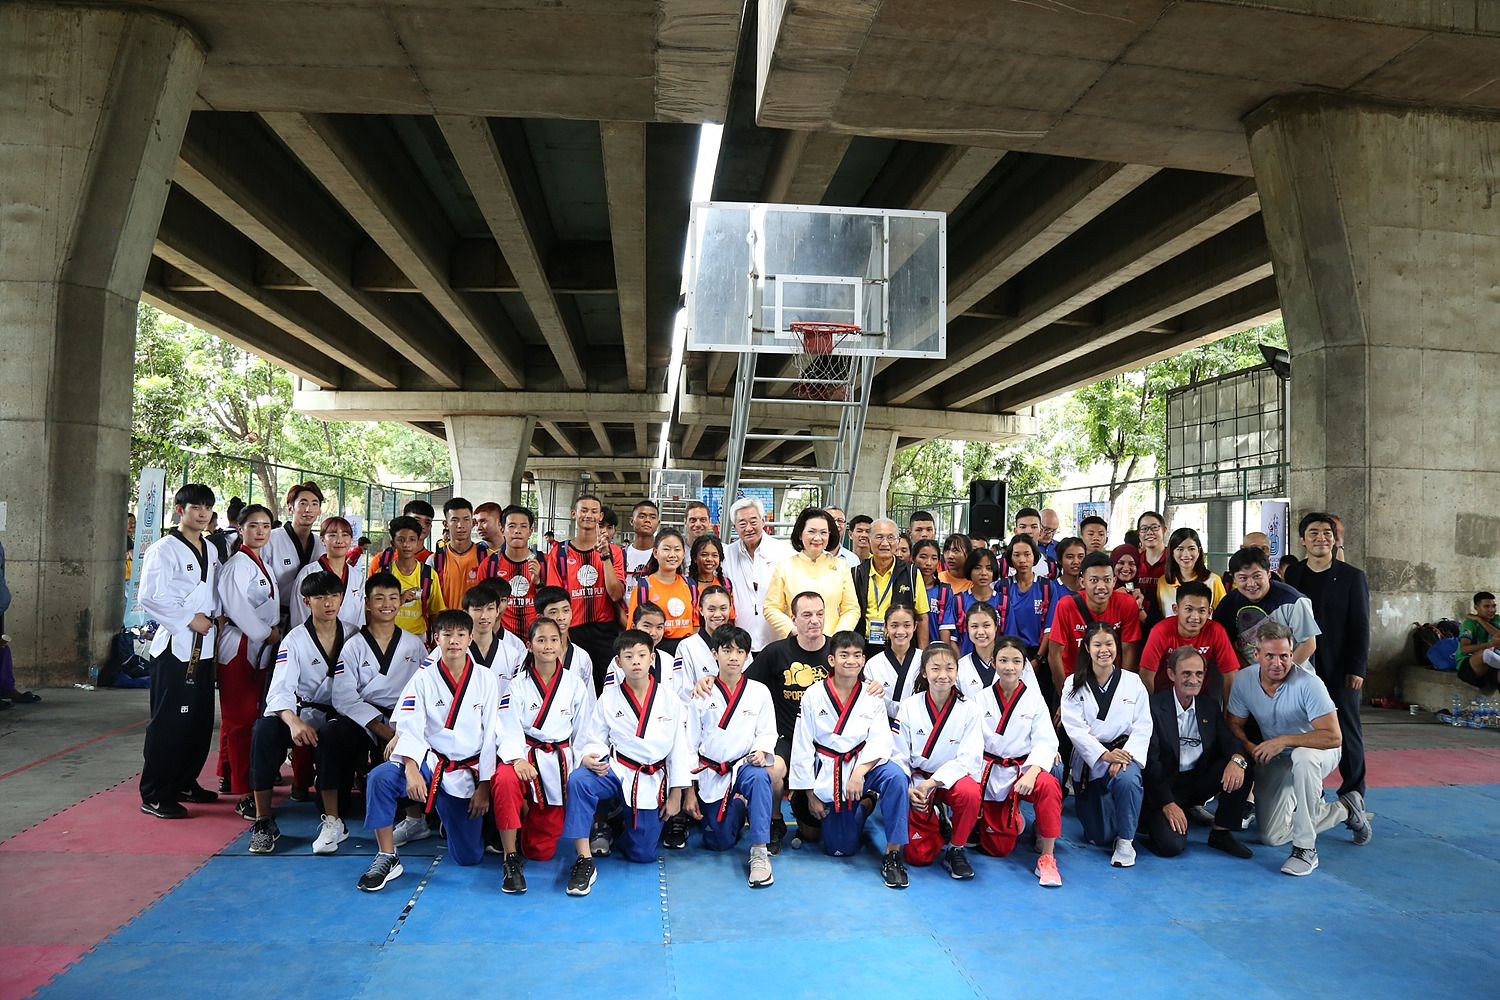 20190728-President poses with WT demo team and refugee athletes participating in BUYT